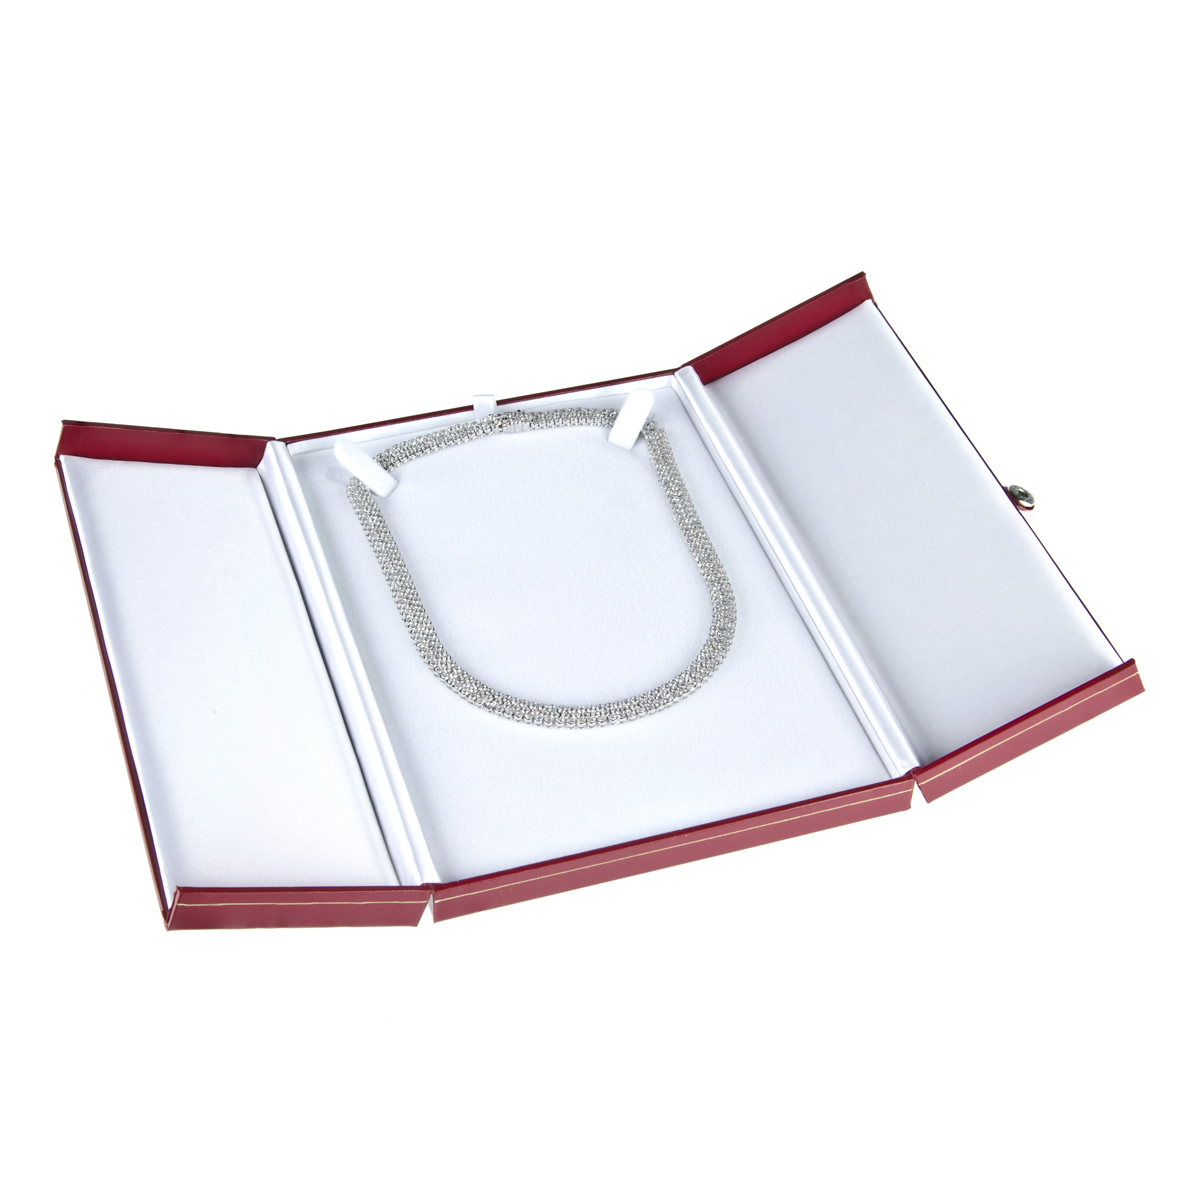 Necklace Jewelry Gift Box: Carnival Collection Red